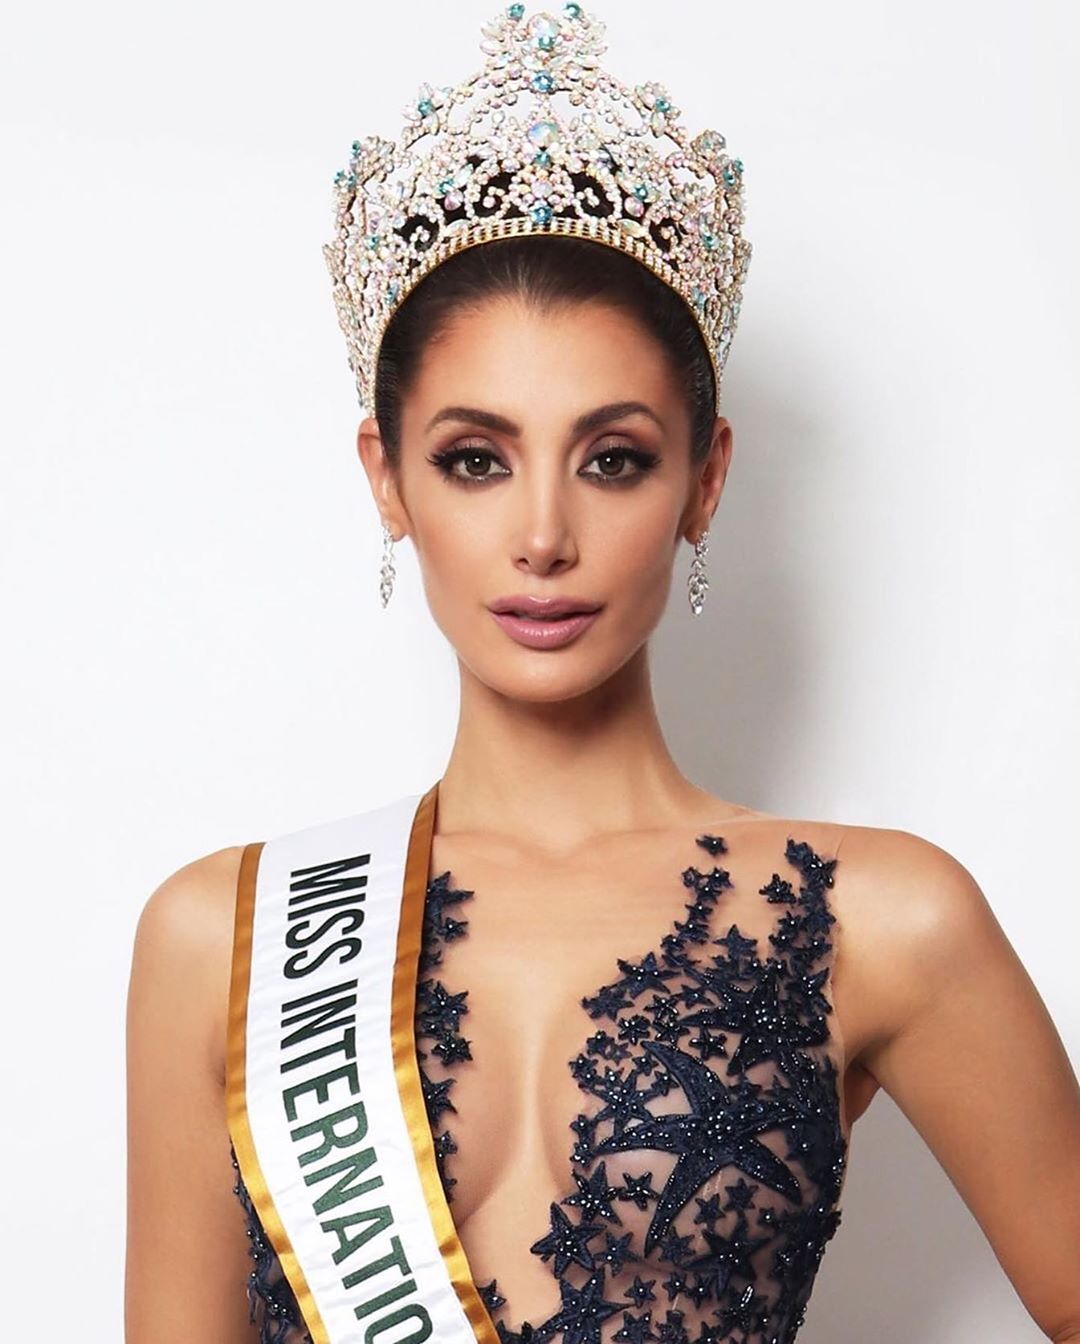 ivana carolina irizarry, miss international puerto rico 2019. 70346111